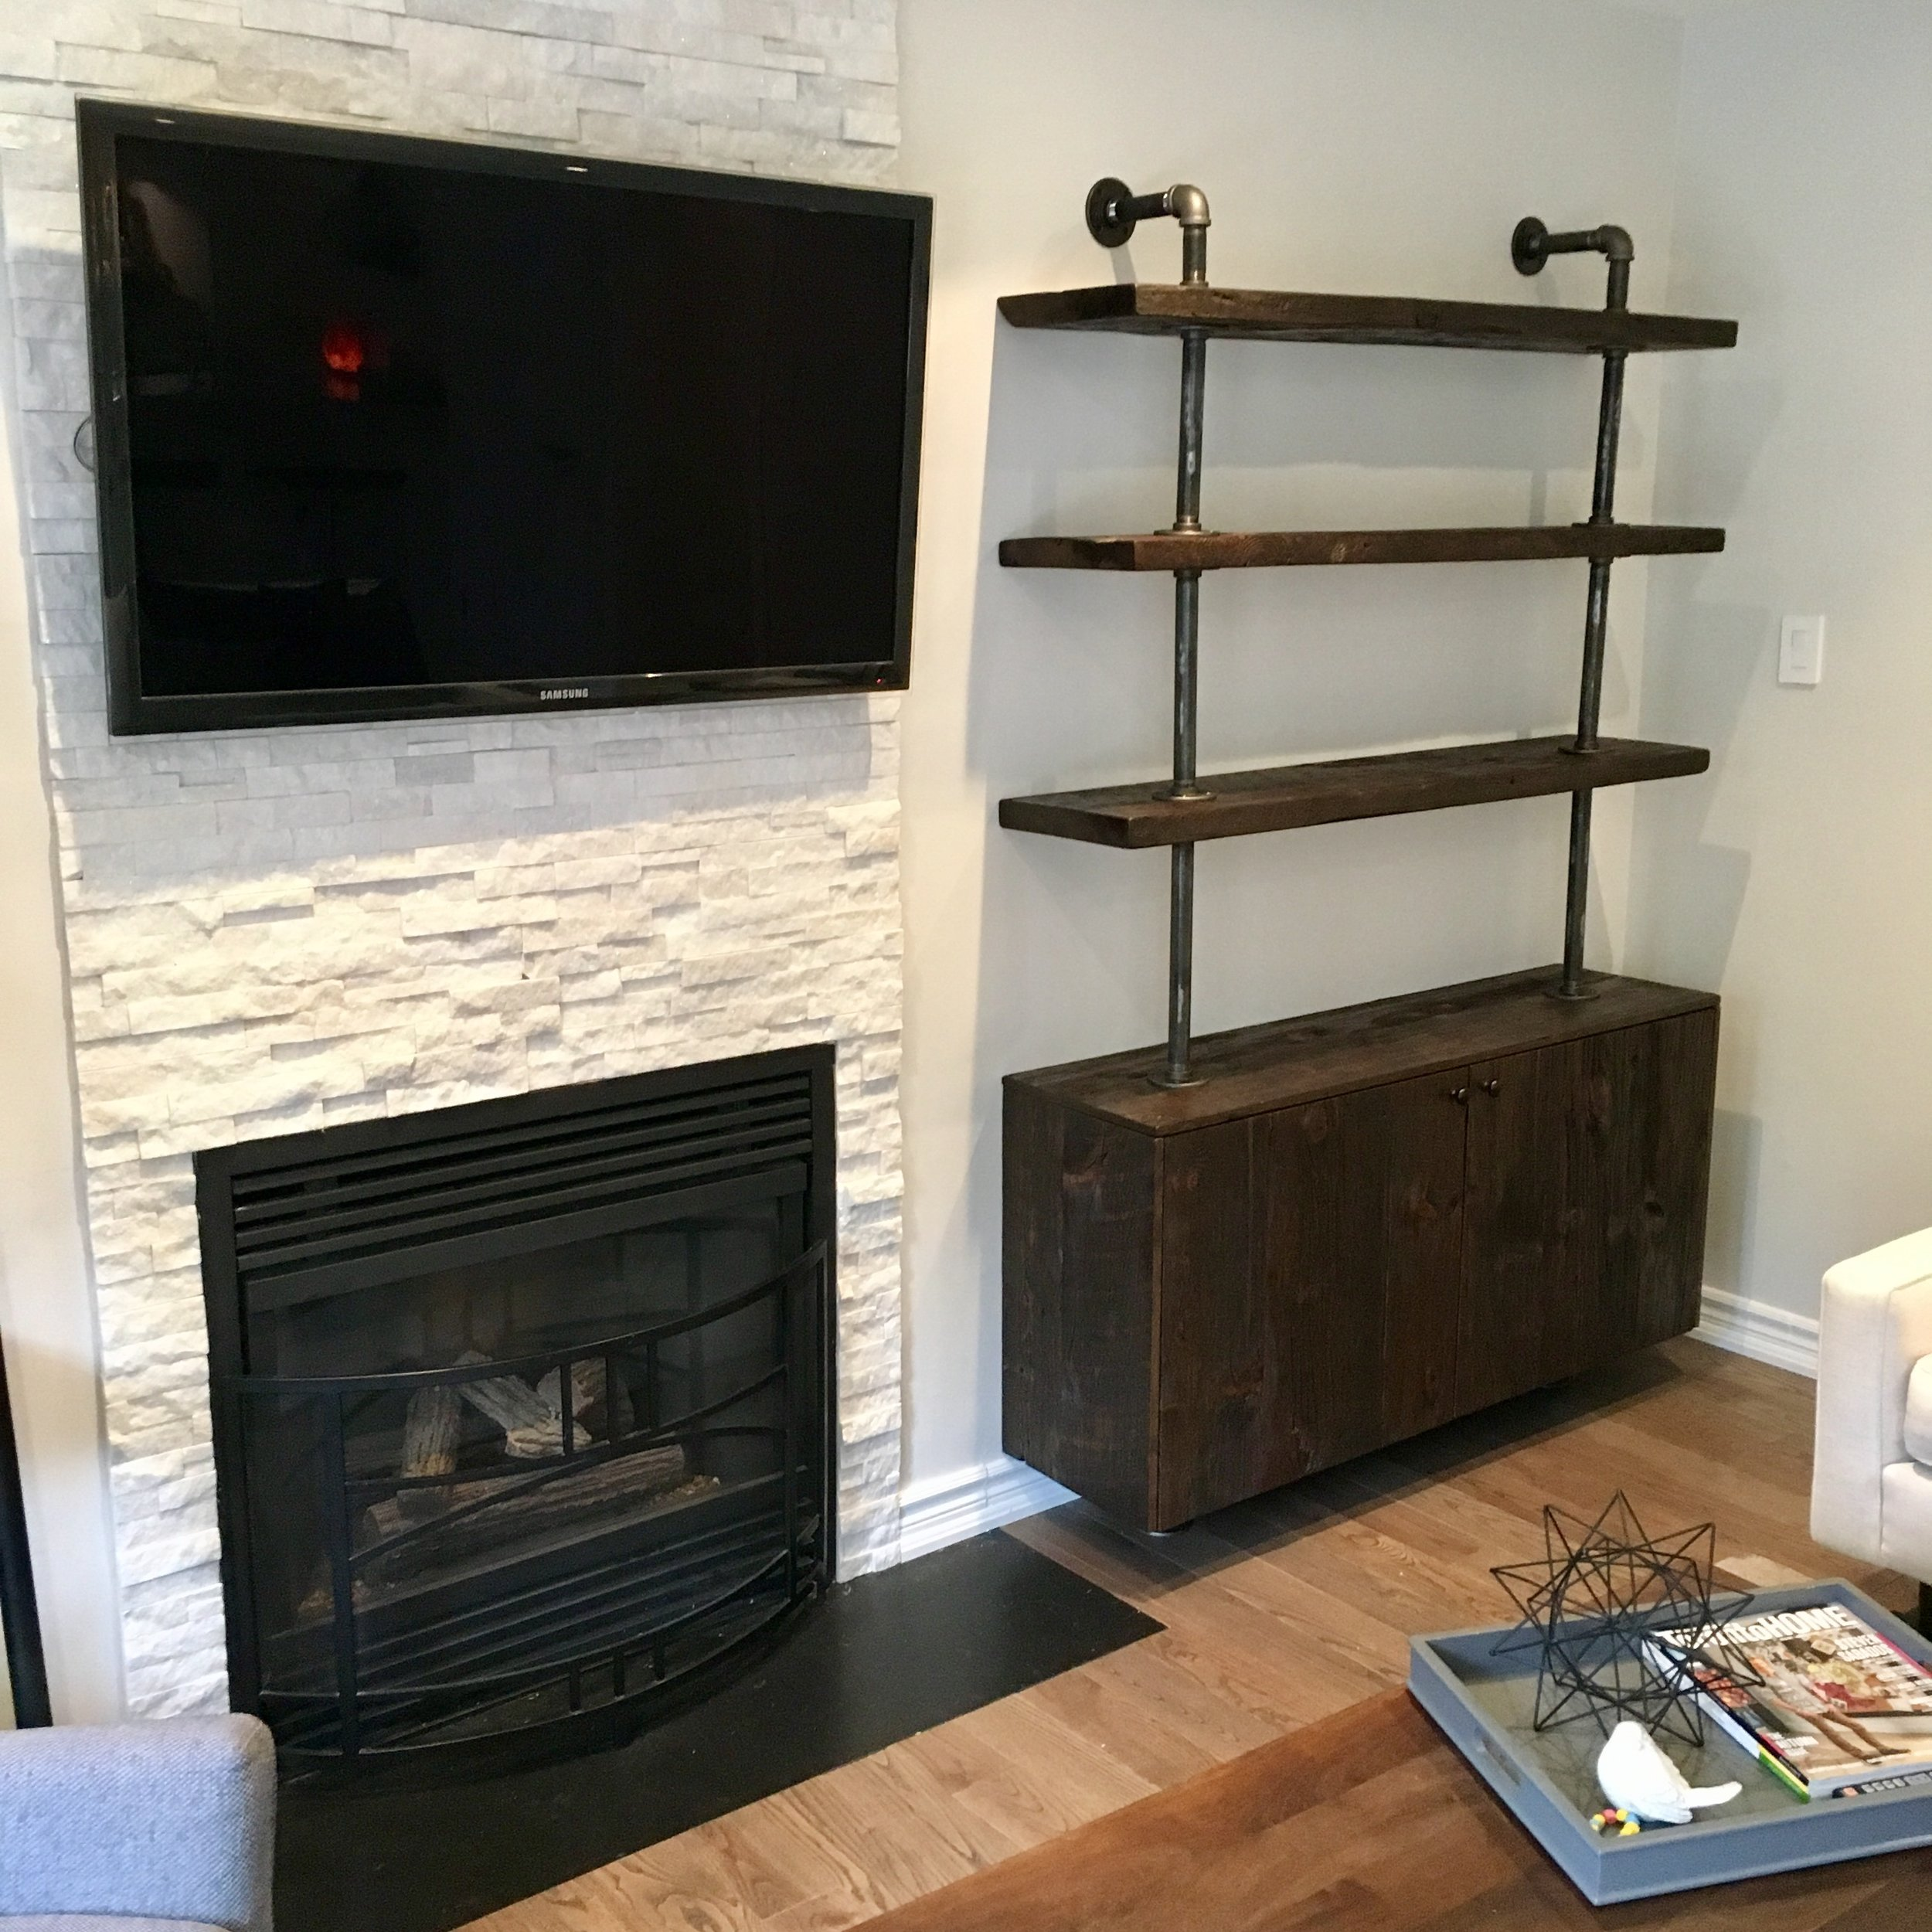 Shelving Unit with Reclaimed Wood and Enclosed Storage